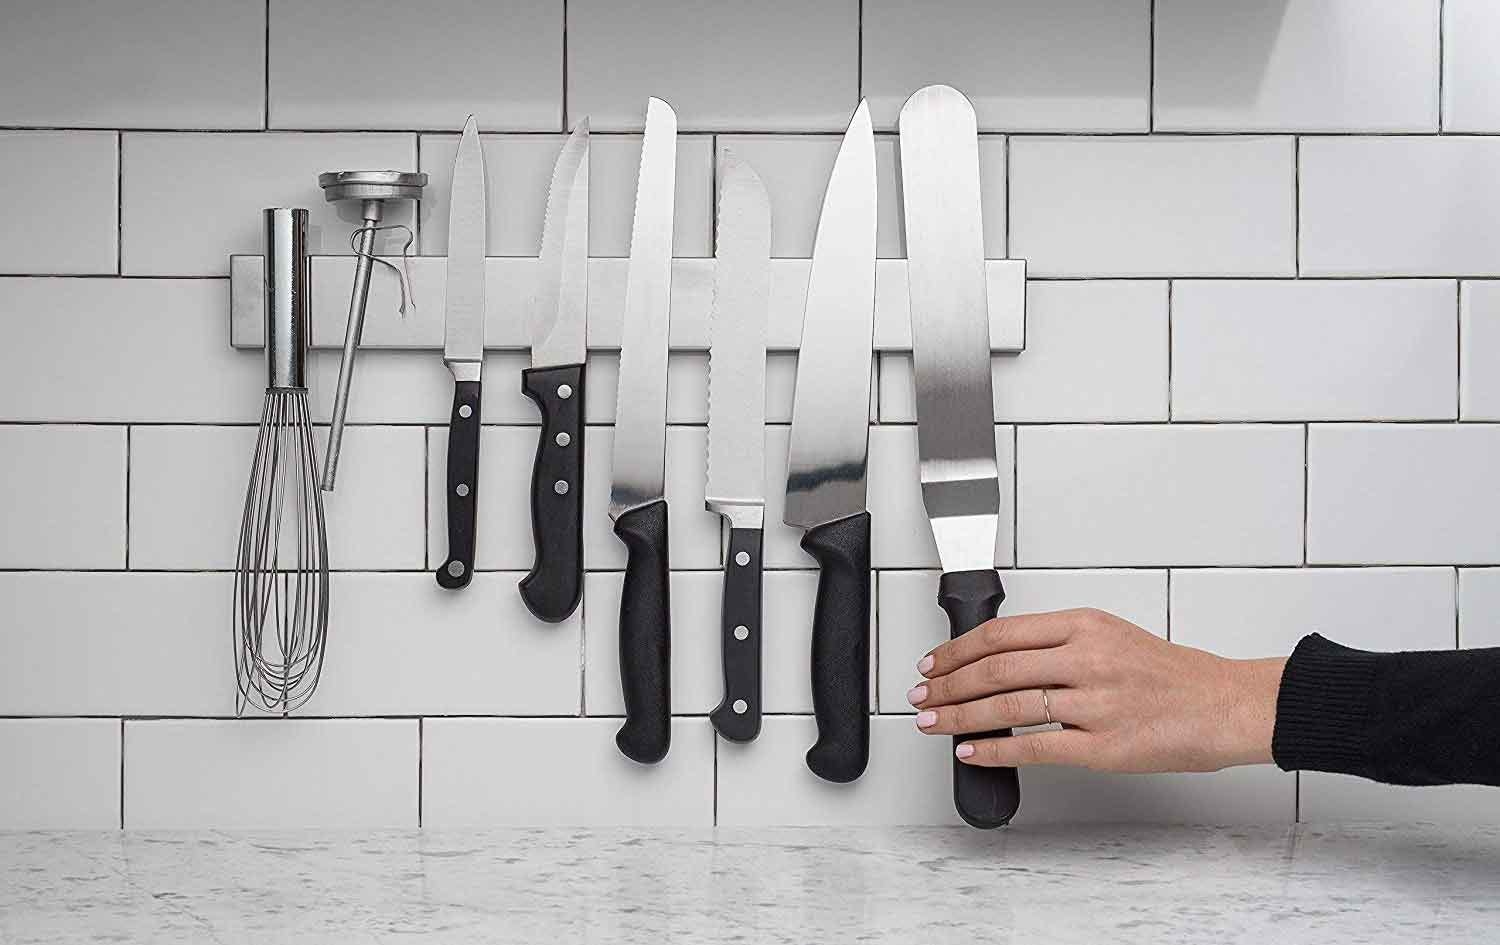 Knives and utensils hanging on a magnetic wall strip.